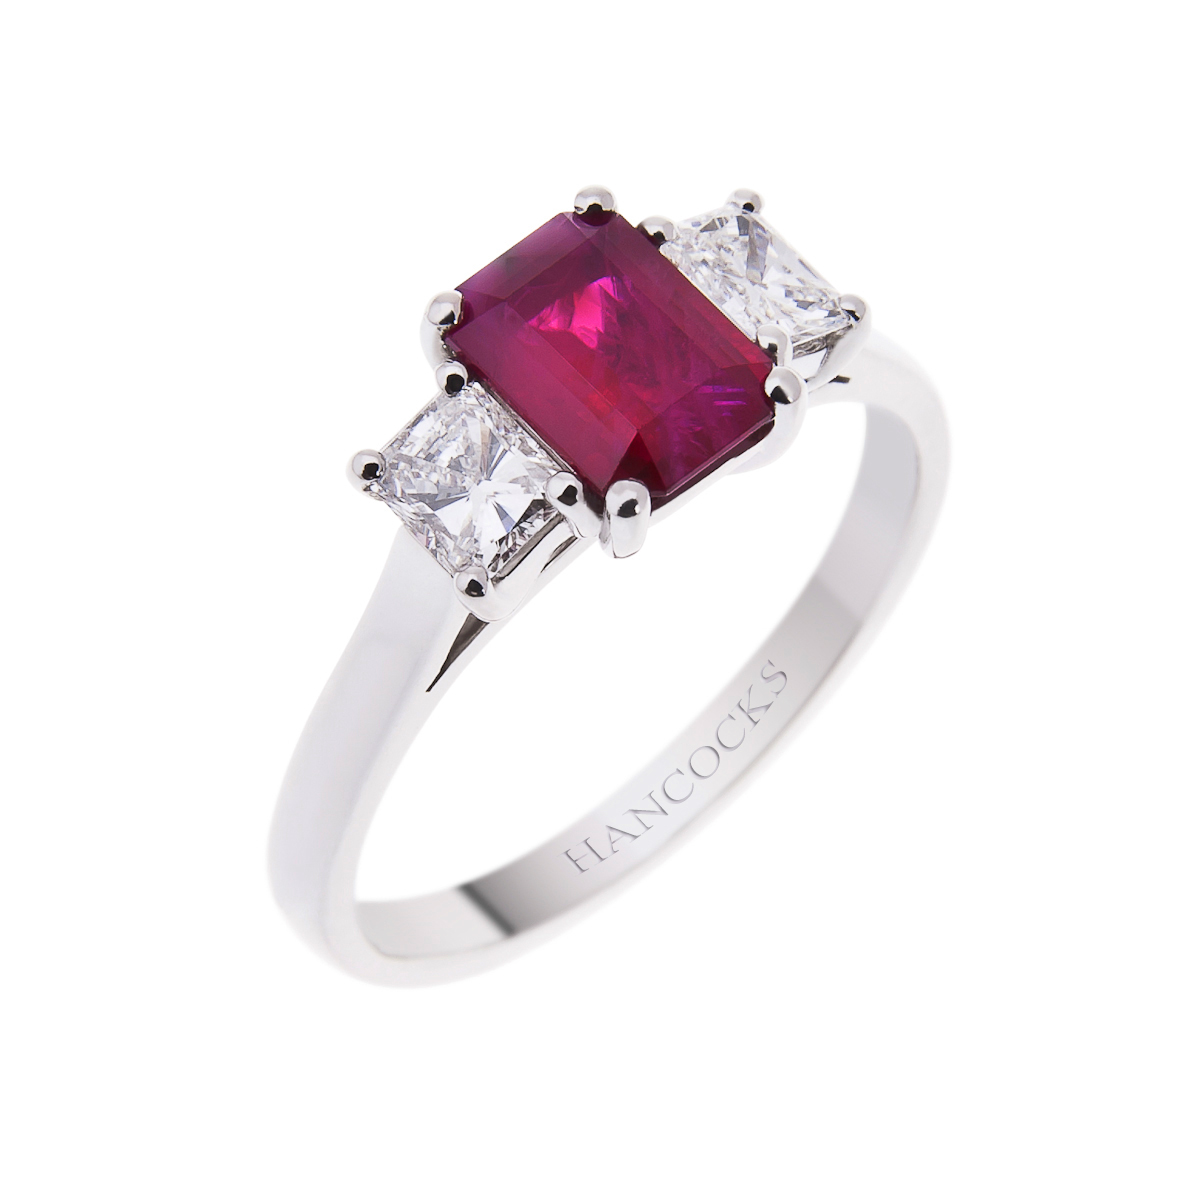 platinum emerald cut ruby and diamond 3-stone ring